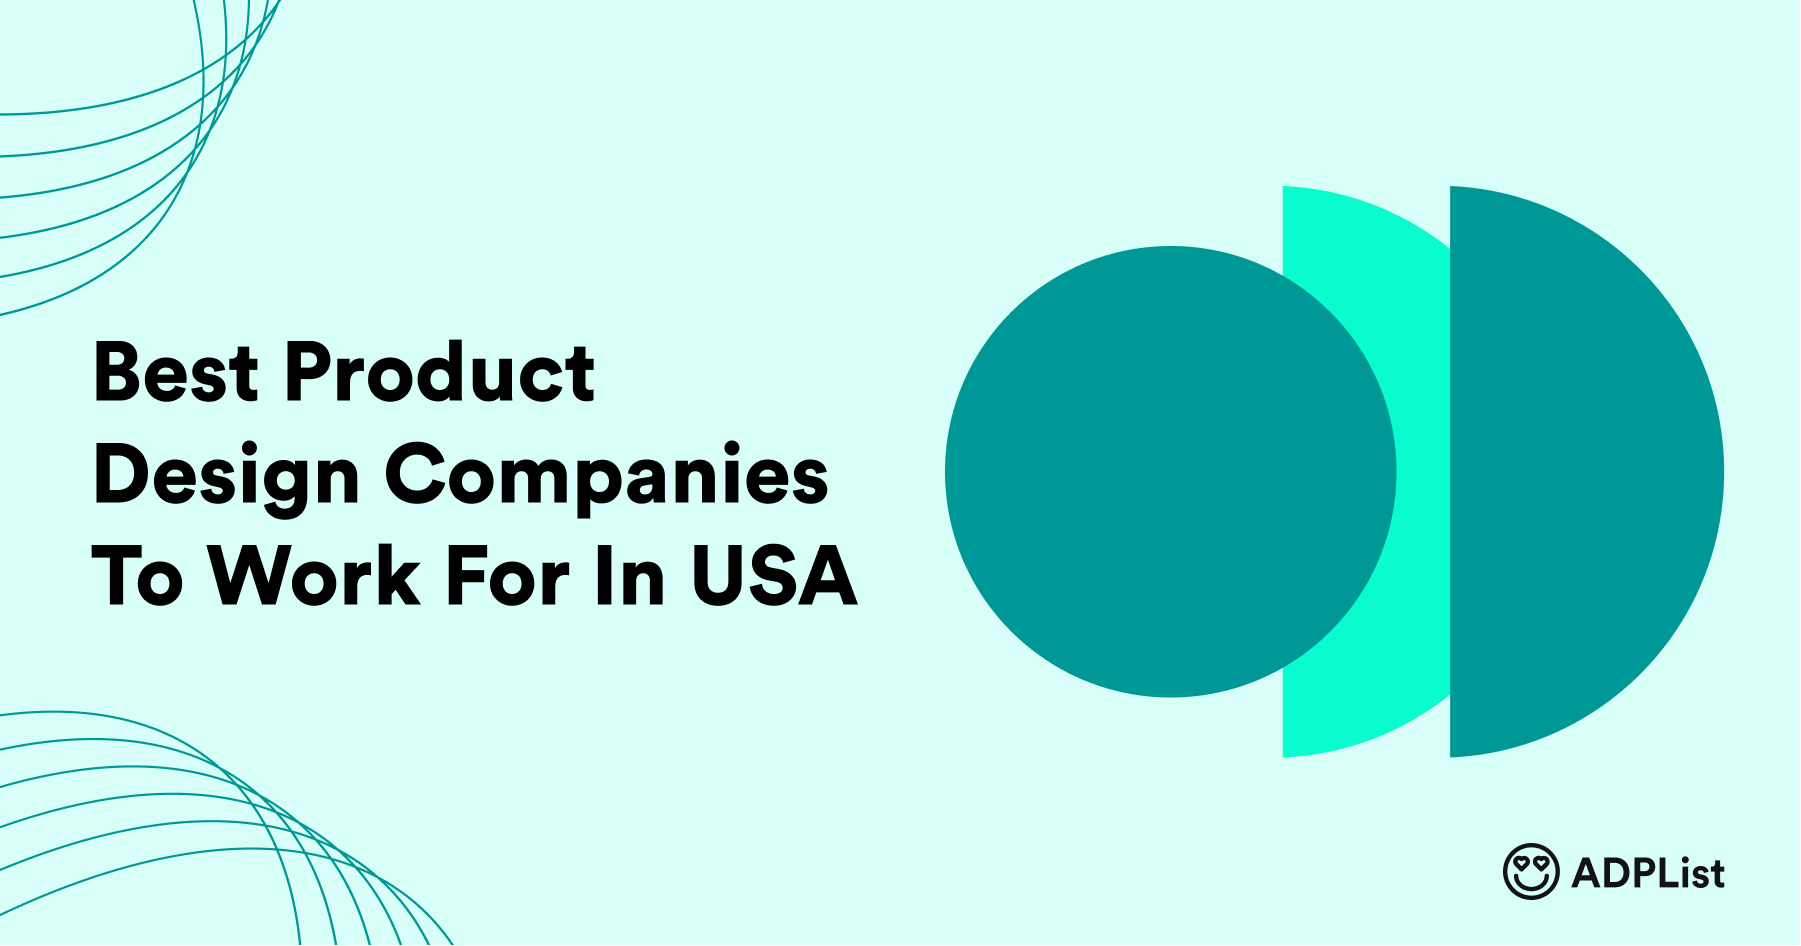 10 Best Product Design Companies To Work For in USA